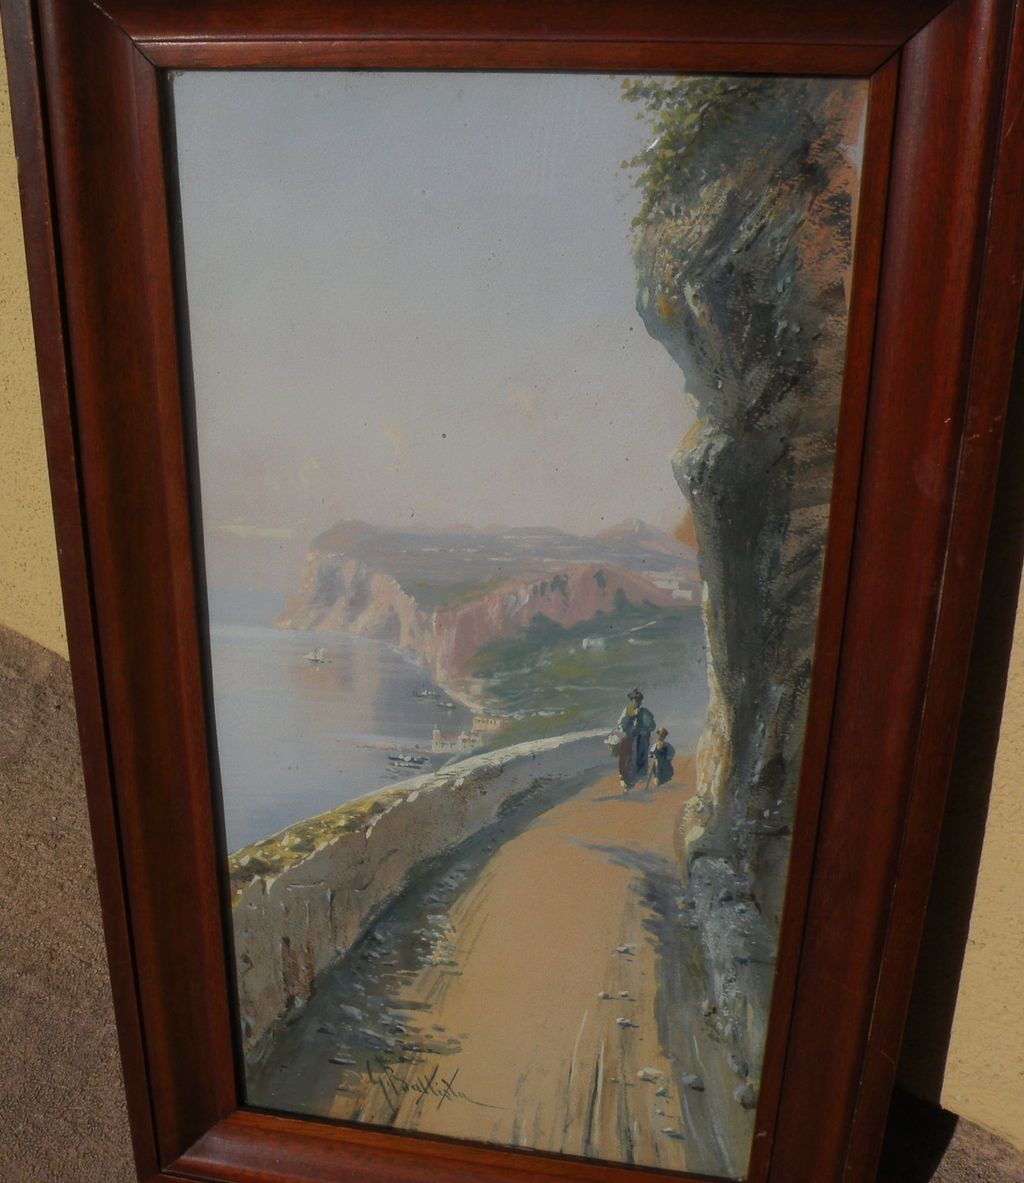 GIOVANNI BATTISTA (1858-1925) Italian art signed gouache coastal landscape painting with figure